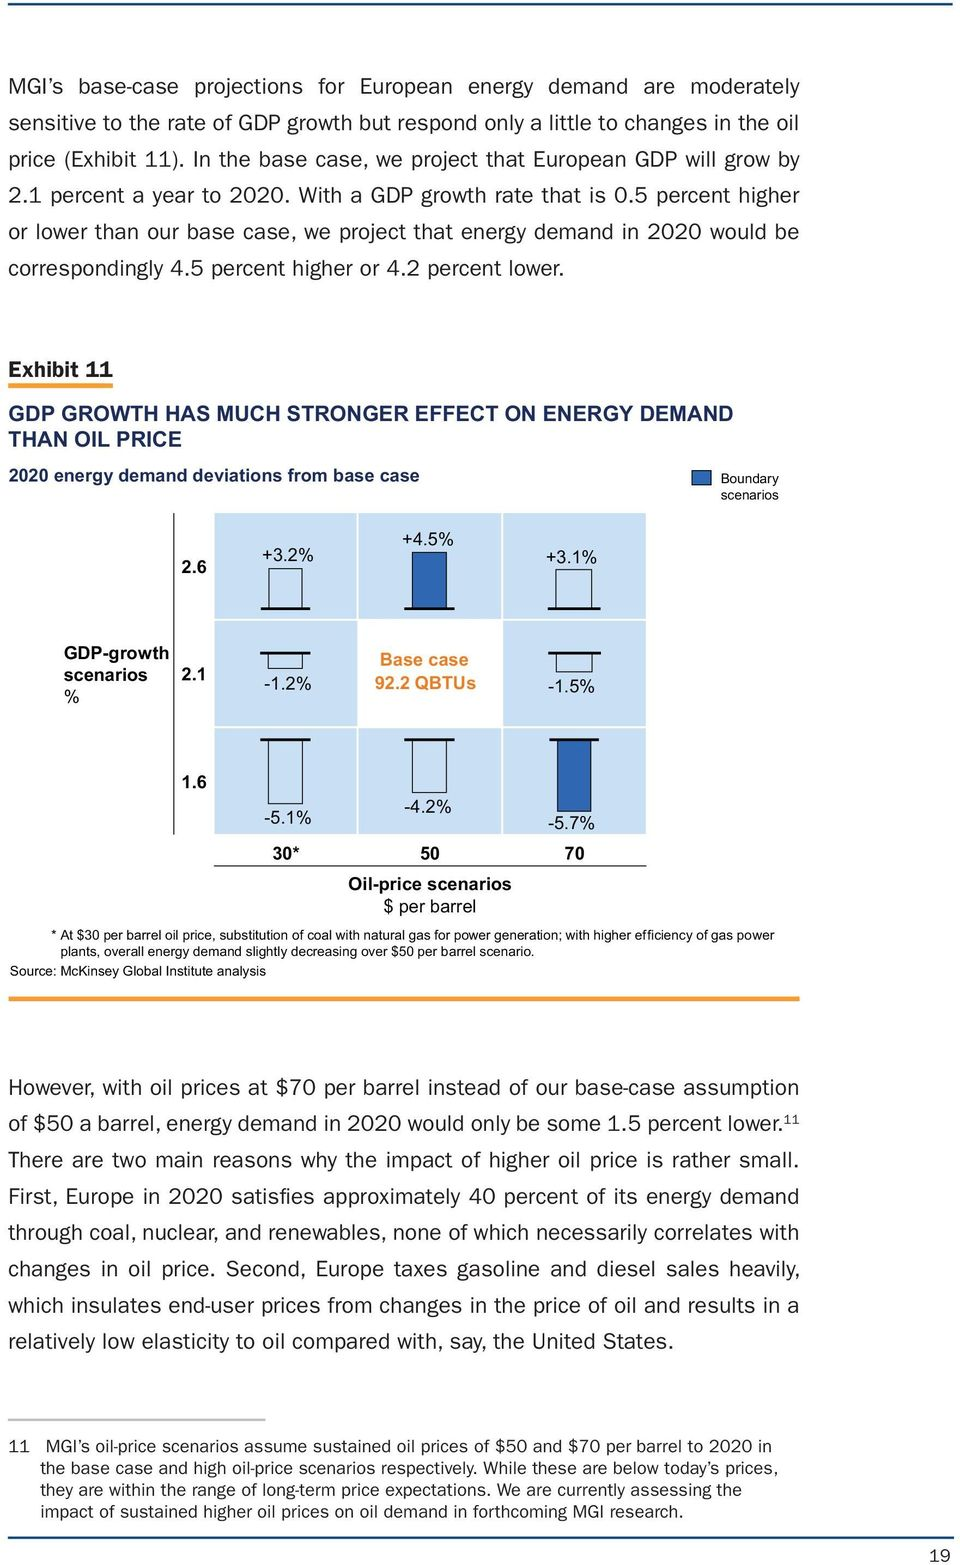 5 percent higher or lower than our base case, we project that energy demand in 2020 would be correspondingly 4.5 percent higher or 4.2 percent lower.